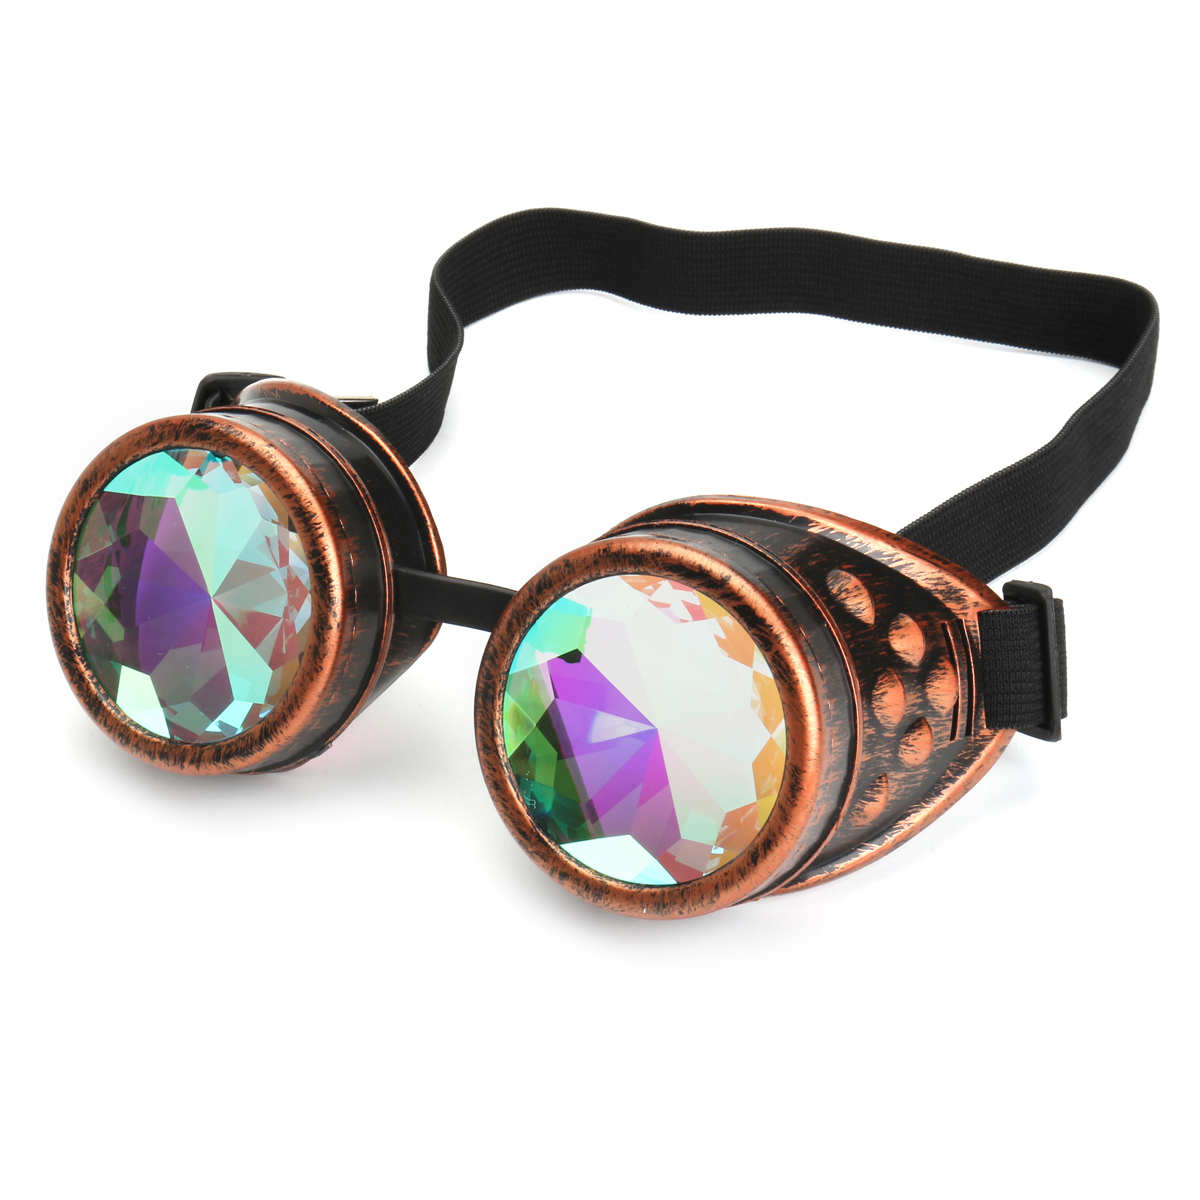 BIKIGHT Outdoor Festivals Kaleidoscope Glasses for Raves - Prism Diffraction Crystal Lenses